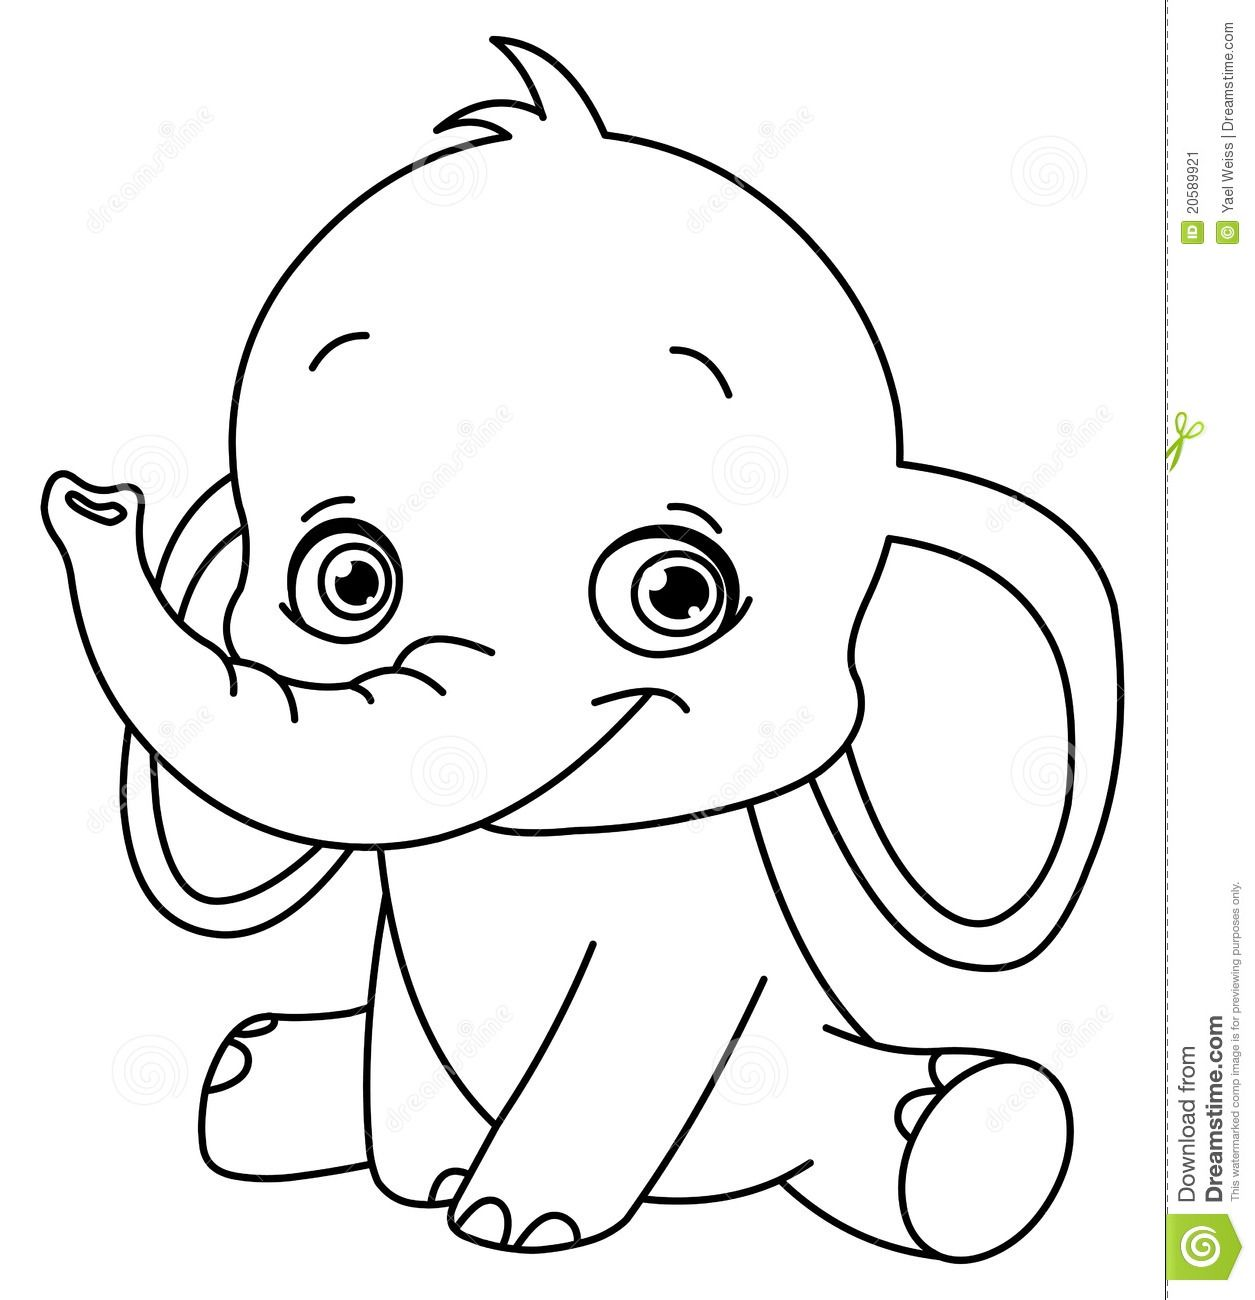 coloring pages of elephants # 0